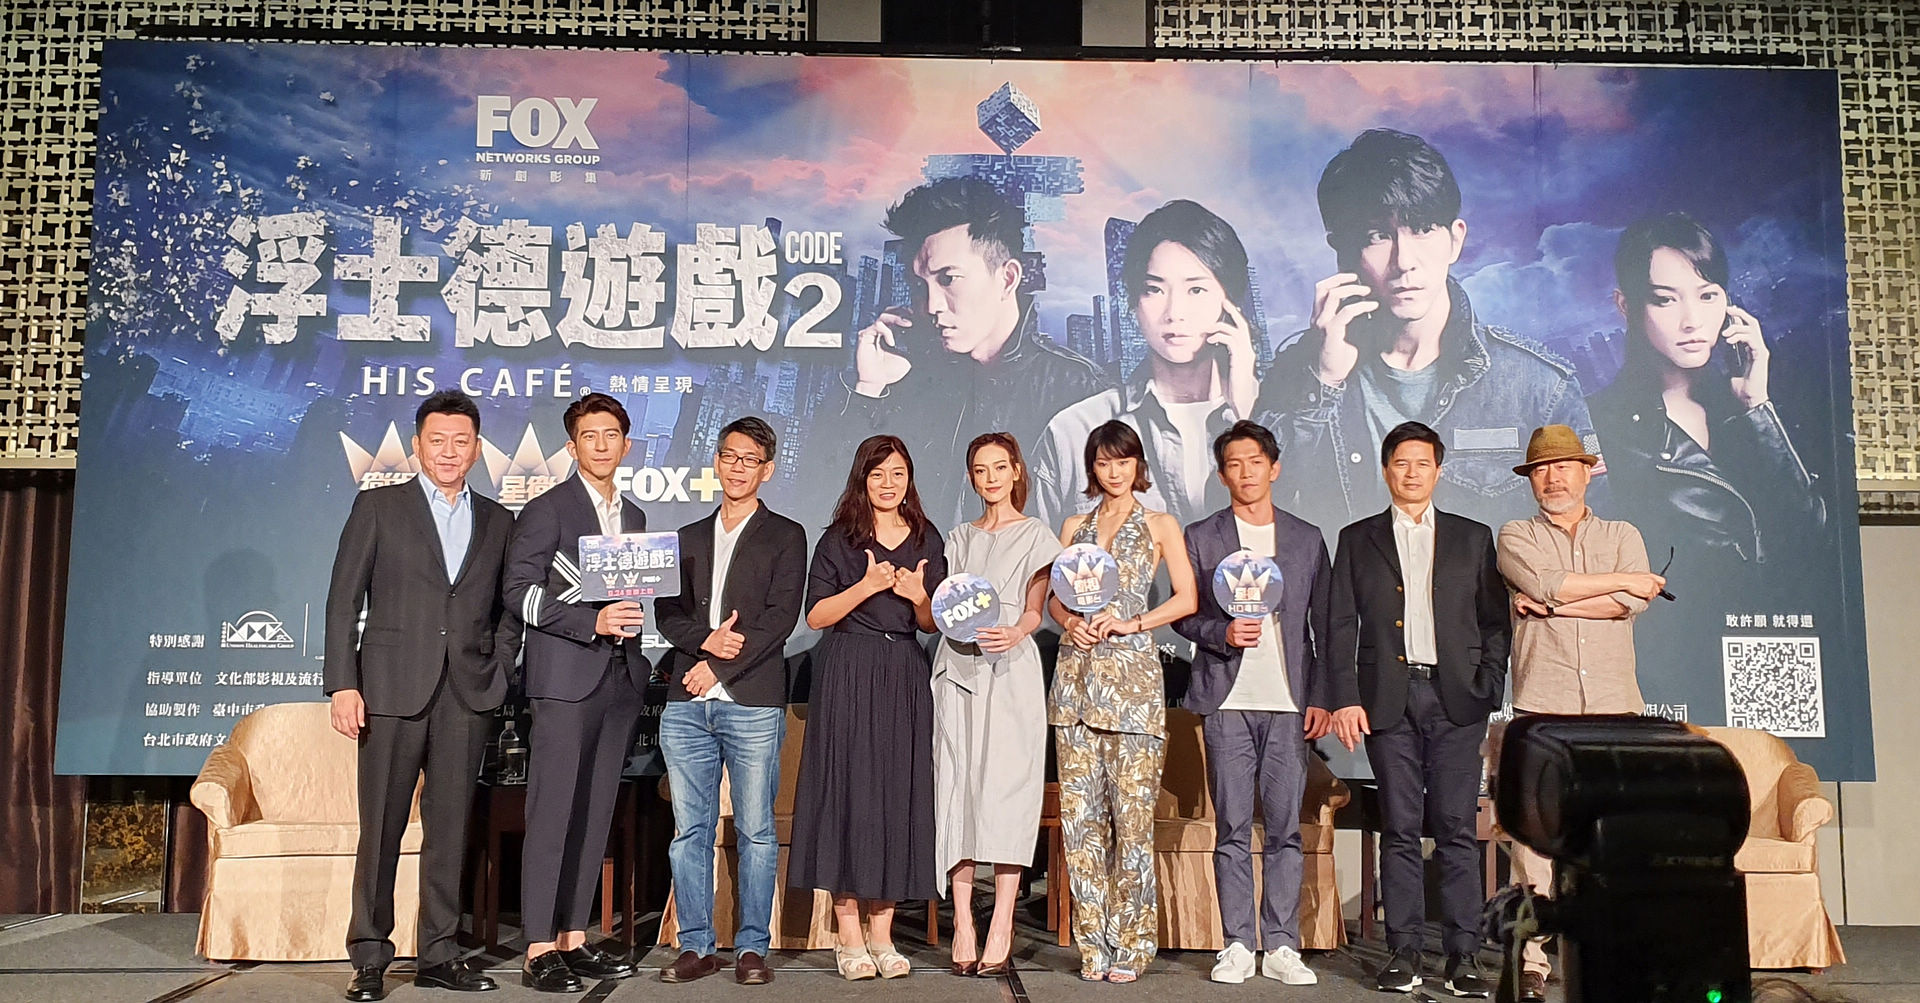 20190618 code2 Press conference 02